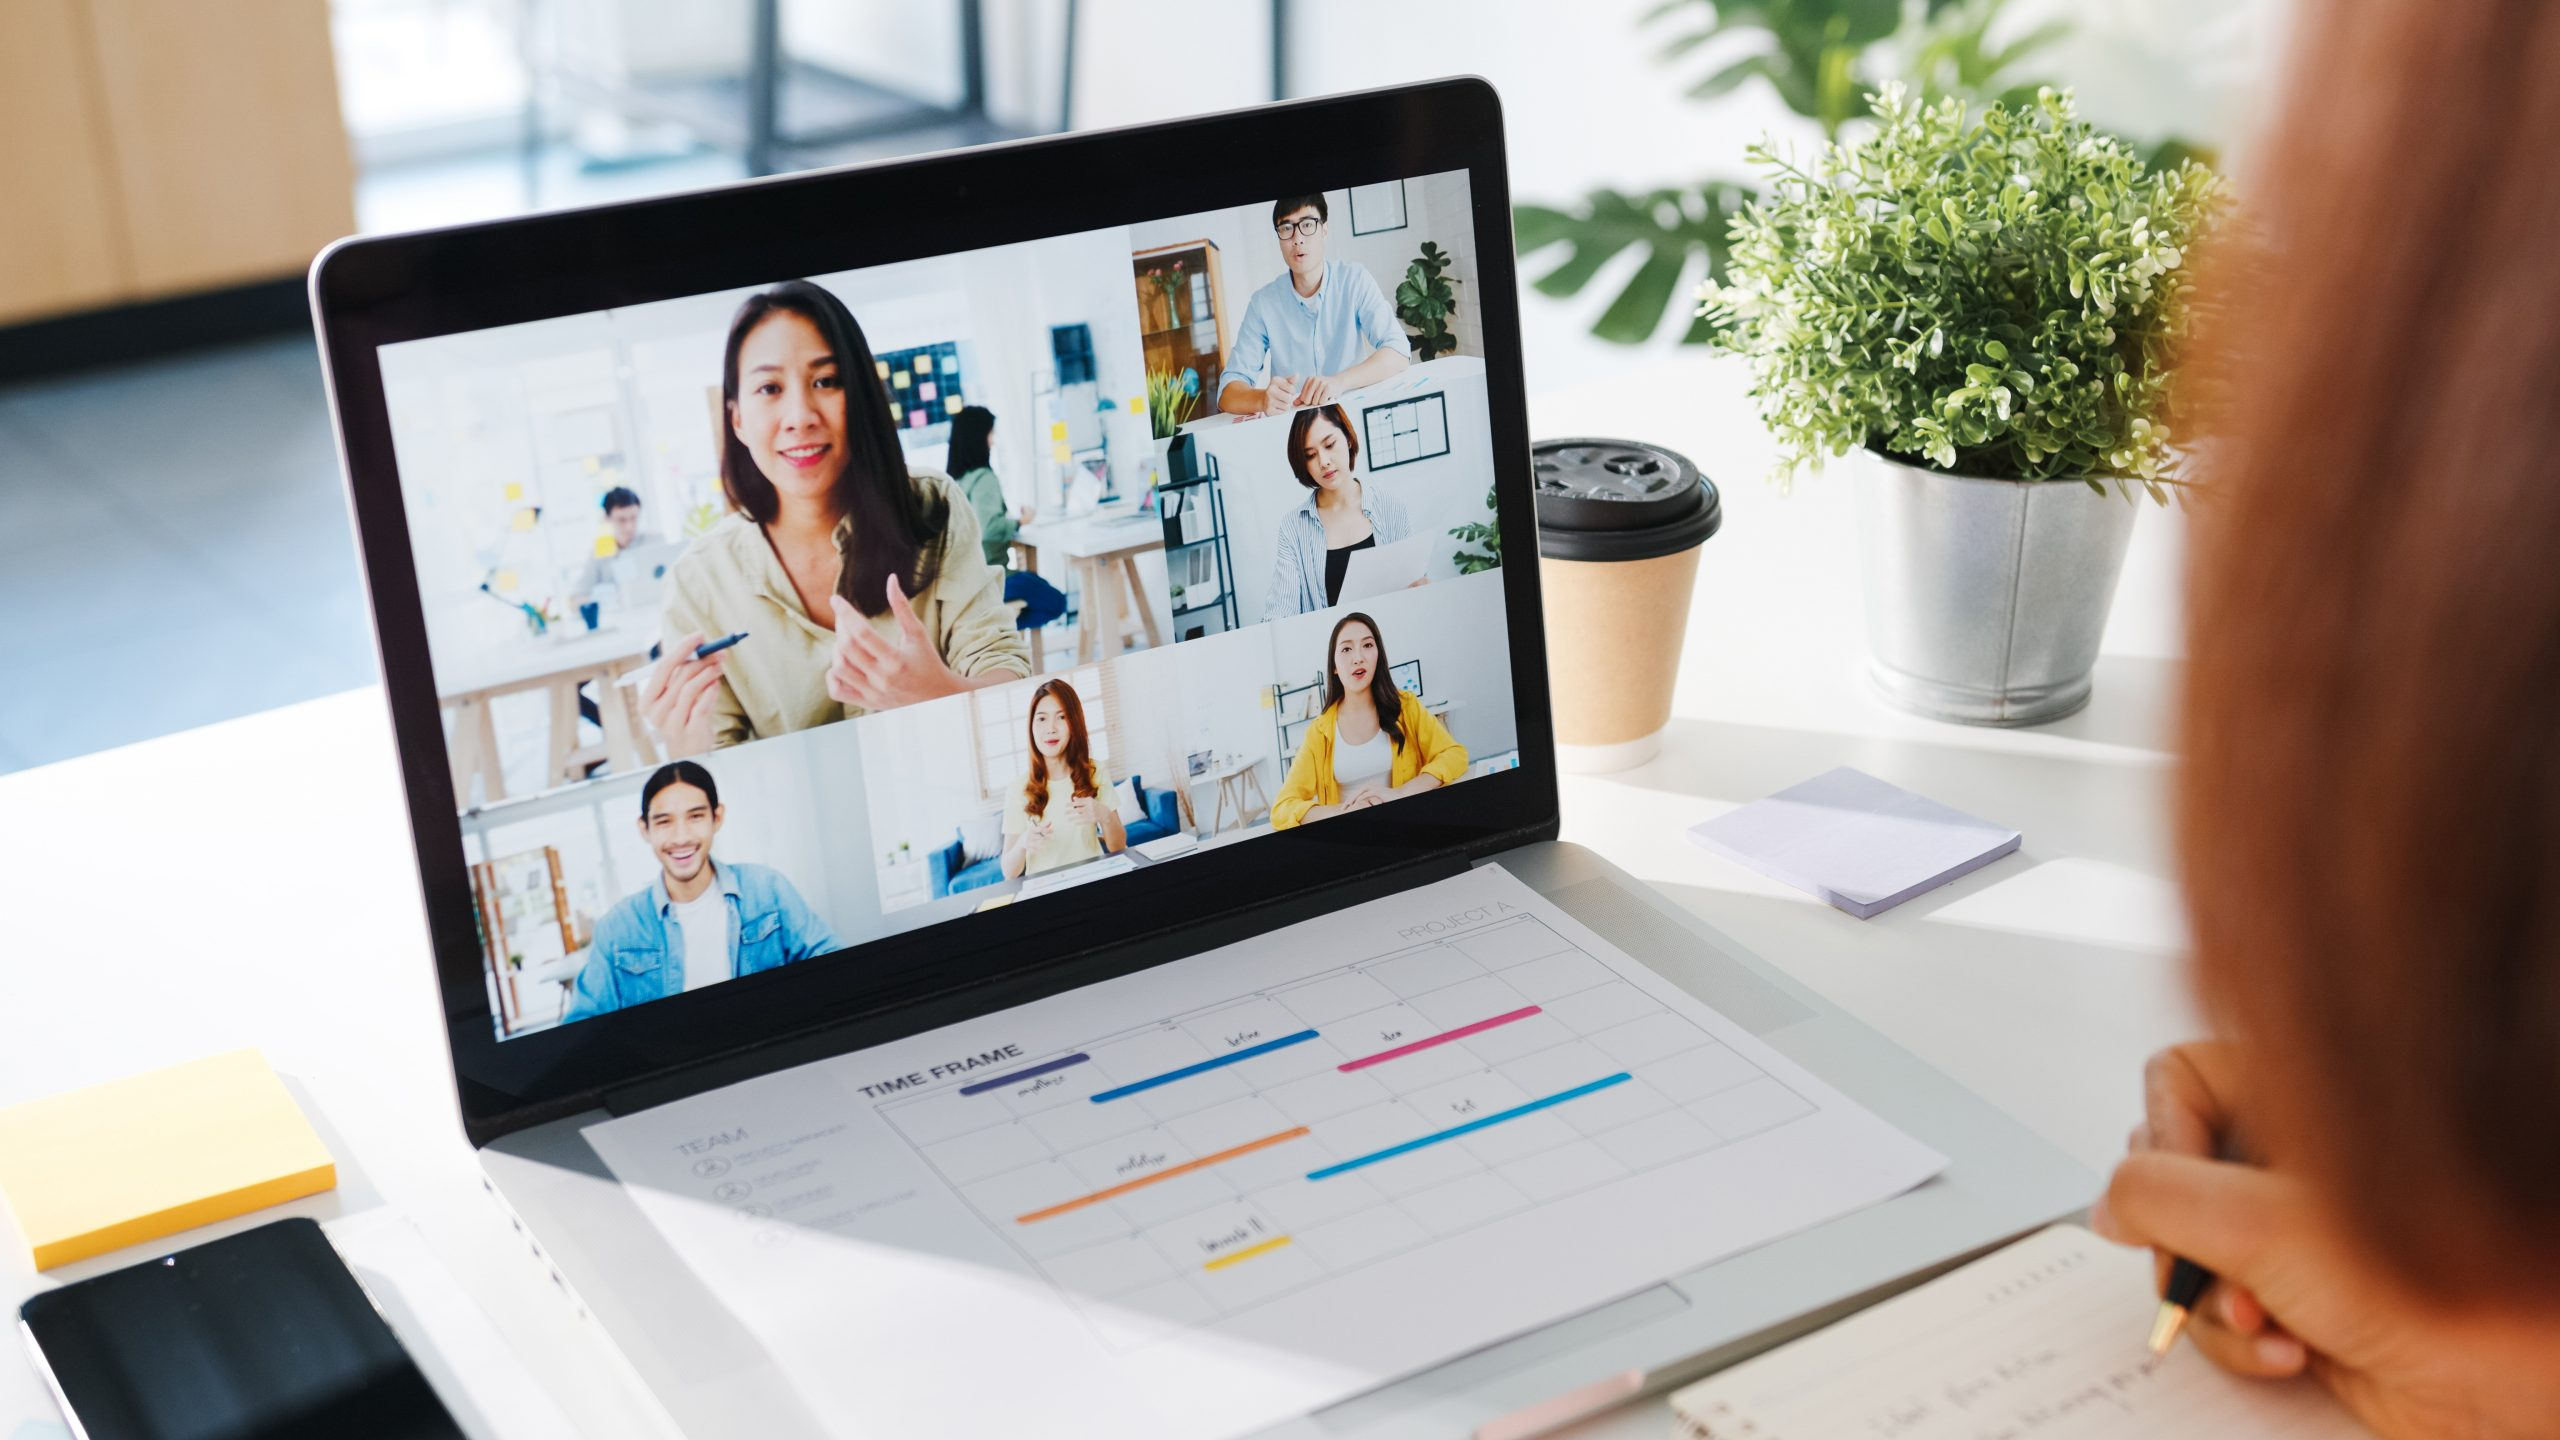 Why Should You Use A Virtual Team In Your Small Business?